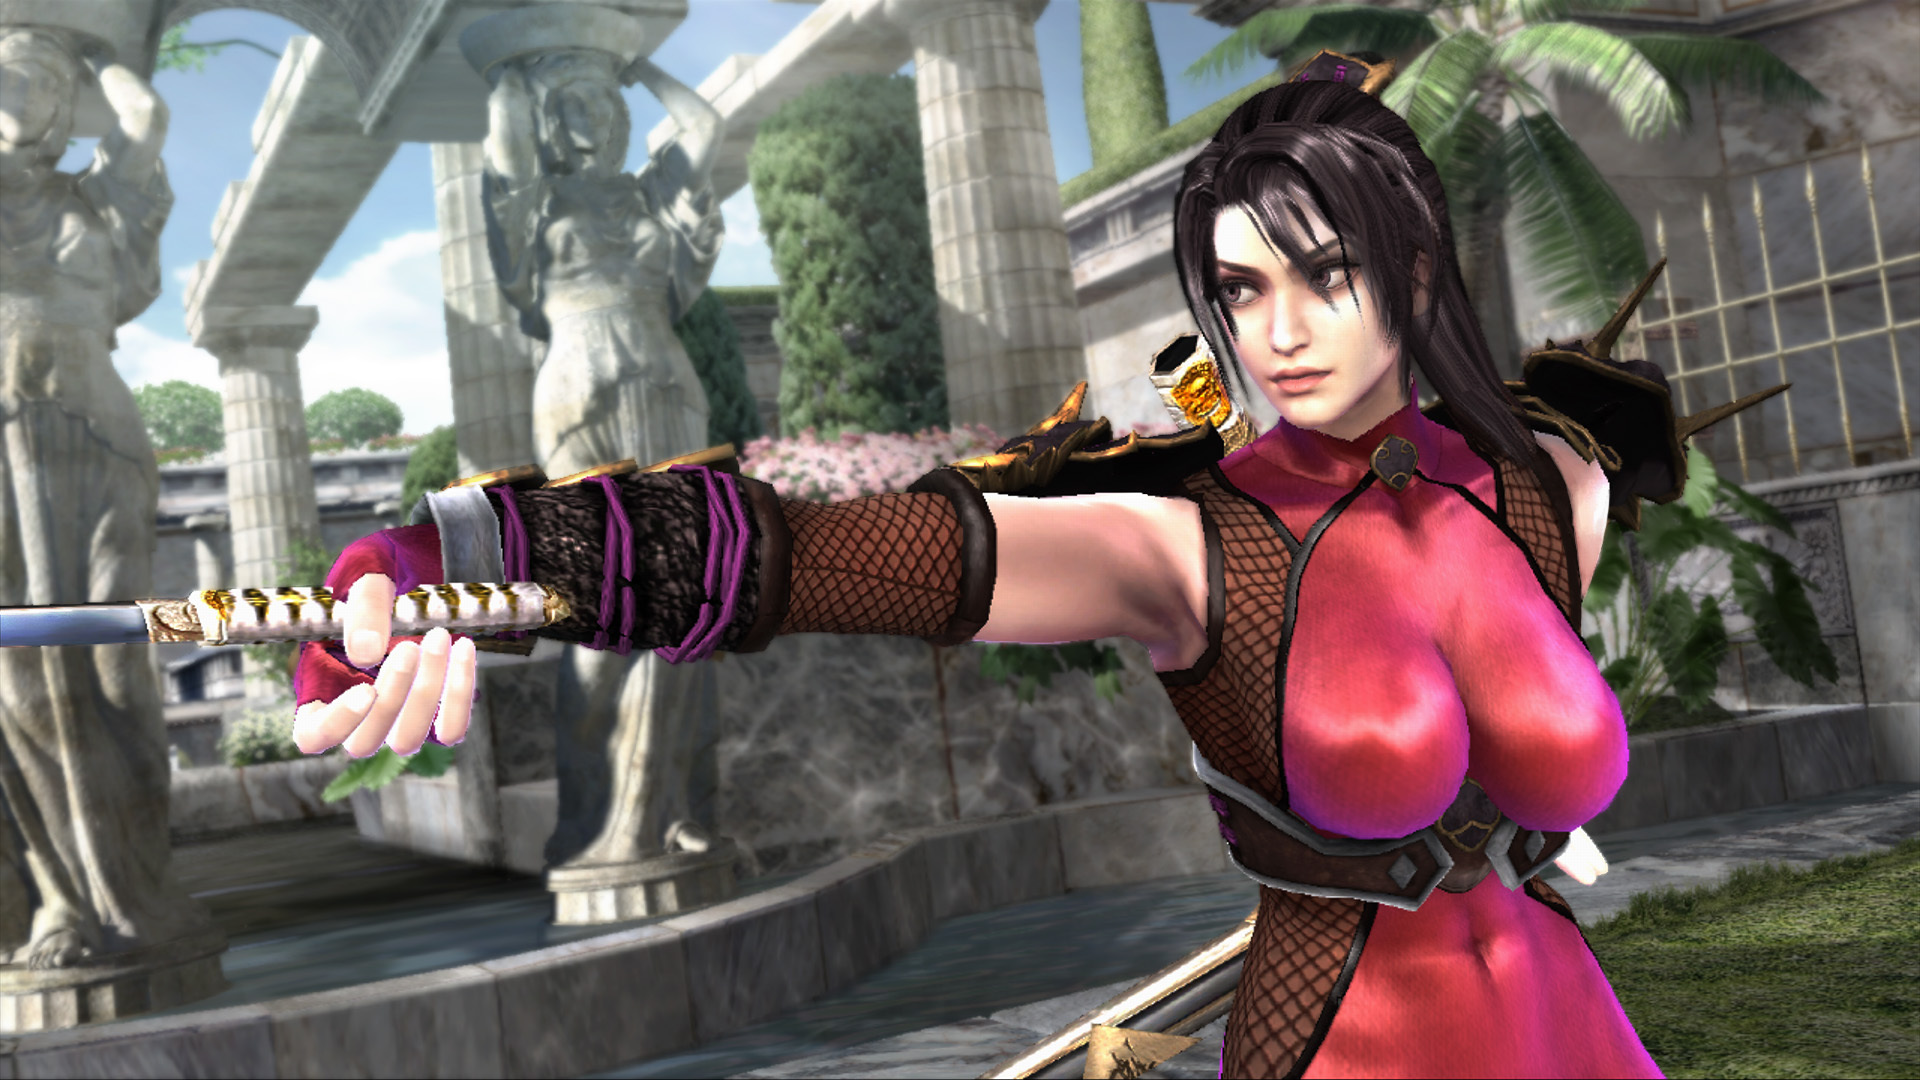 Soul caliber 4 nude patch hentai pic -